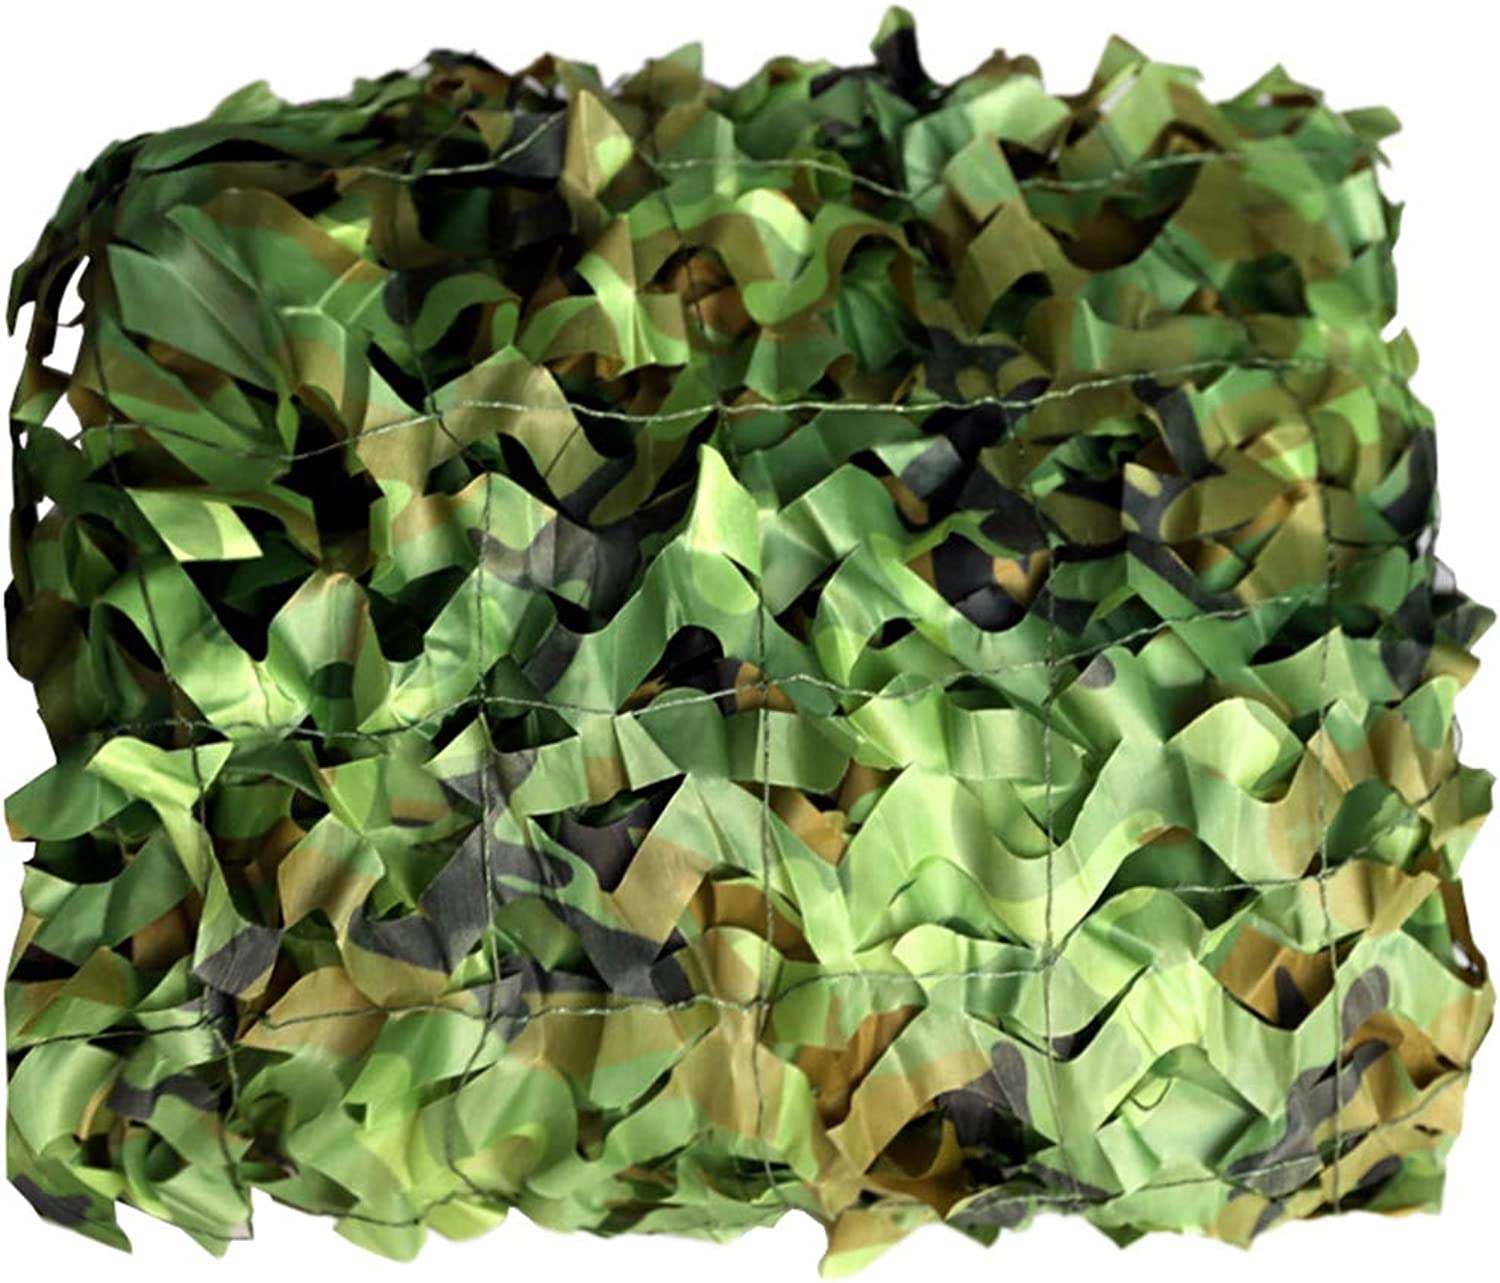 Woodland Camo Netting, Camouflage Netting UV Resistant Shade for Camping Hunting Shooting Military Party Decoration Themed Restaurant Decor